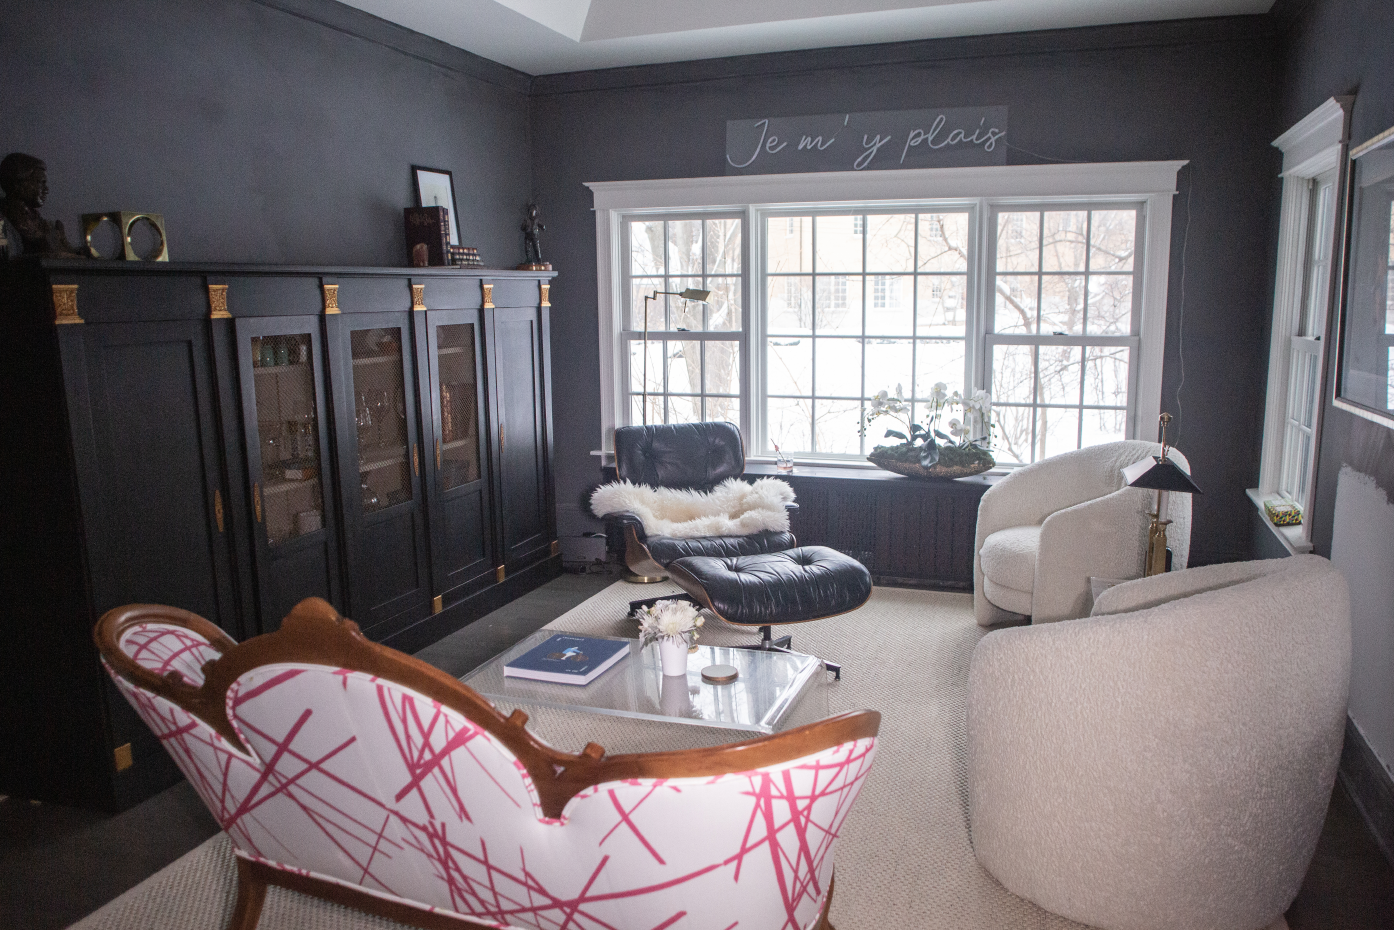 Living Room Remodel by Twice the Measure